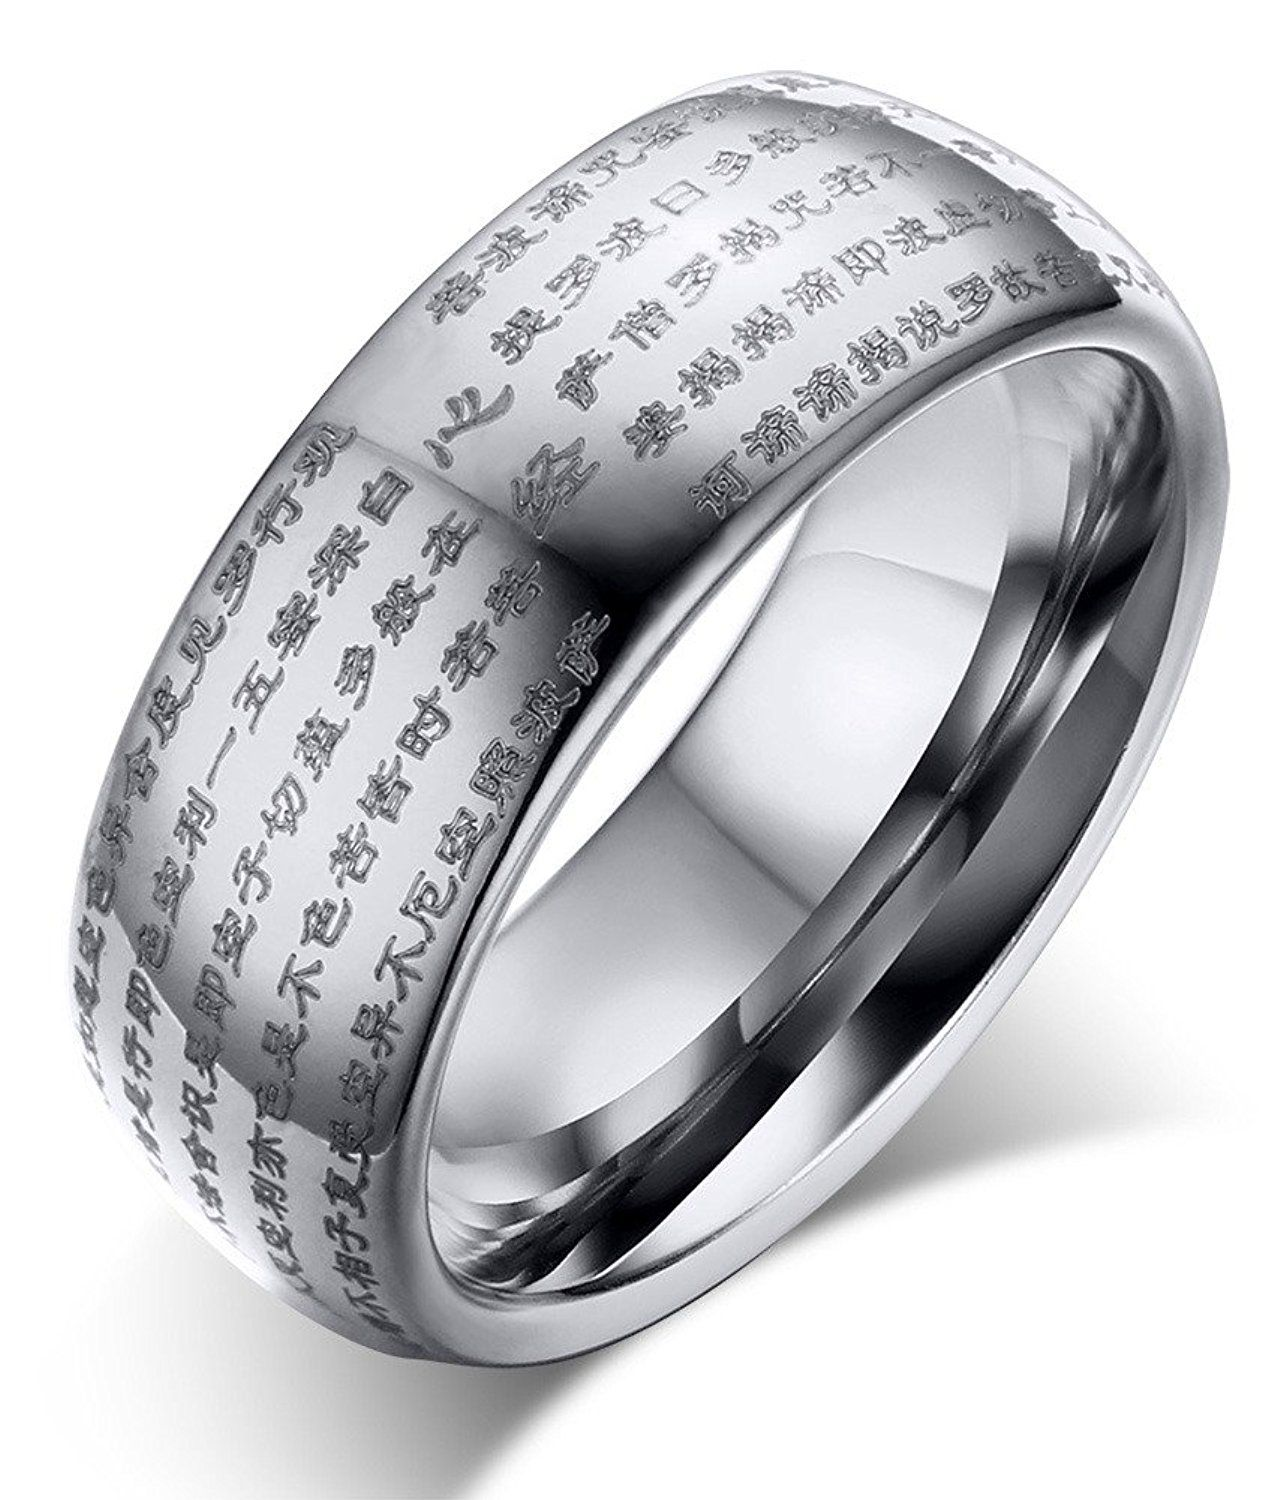 Genuine Tungsten Carbide Silver Chinese Heart Sutra Engraved Domed Wedding Rings Band Tried It Love Click The Image Gift For Guys: Chinese Man Wedding Band At Websimilar.org